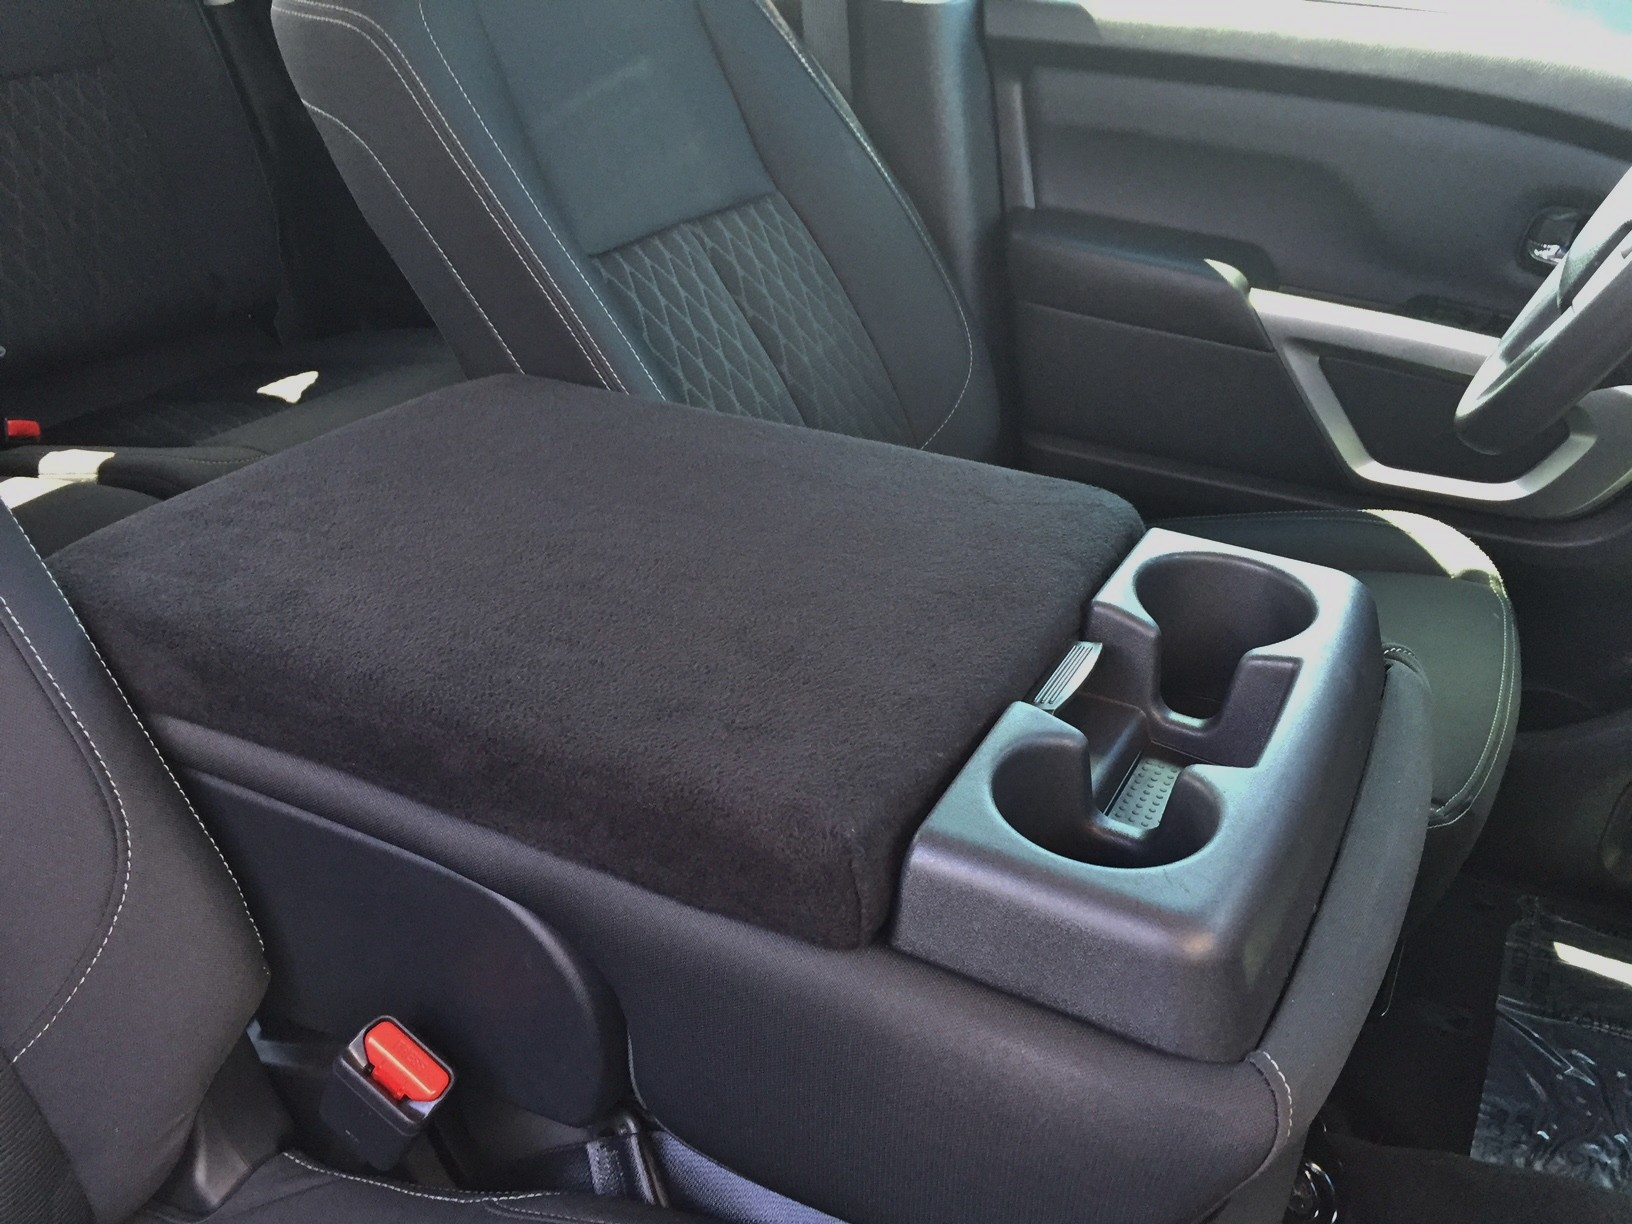 Nissan Titan 2013-2020 - (With Third Front Middle Seat)- Fleece Console Cover